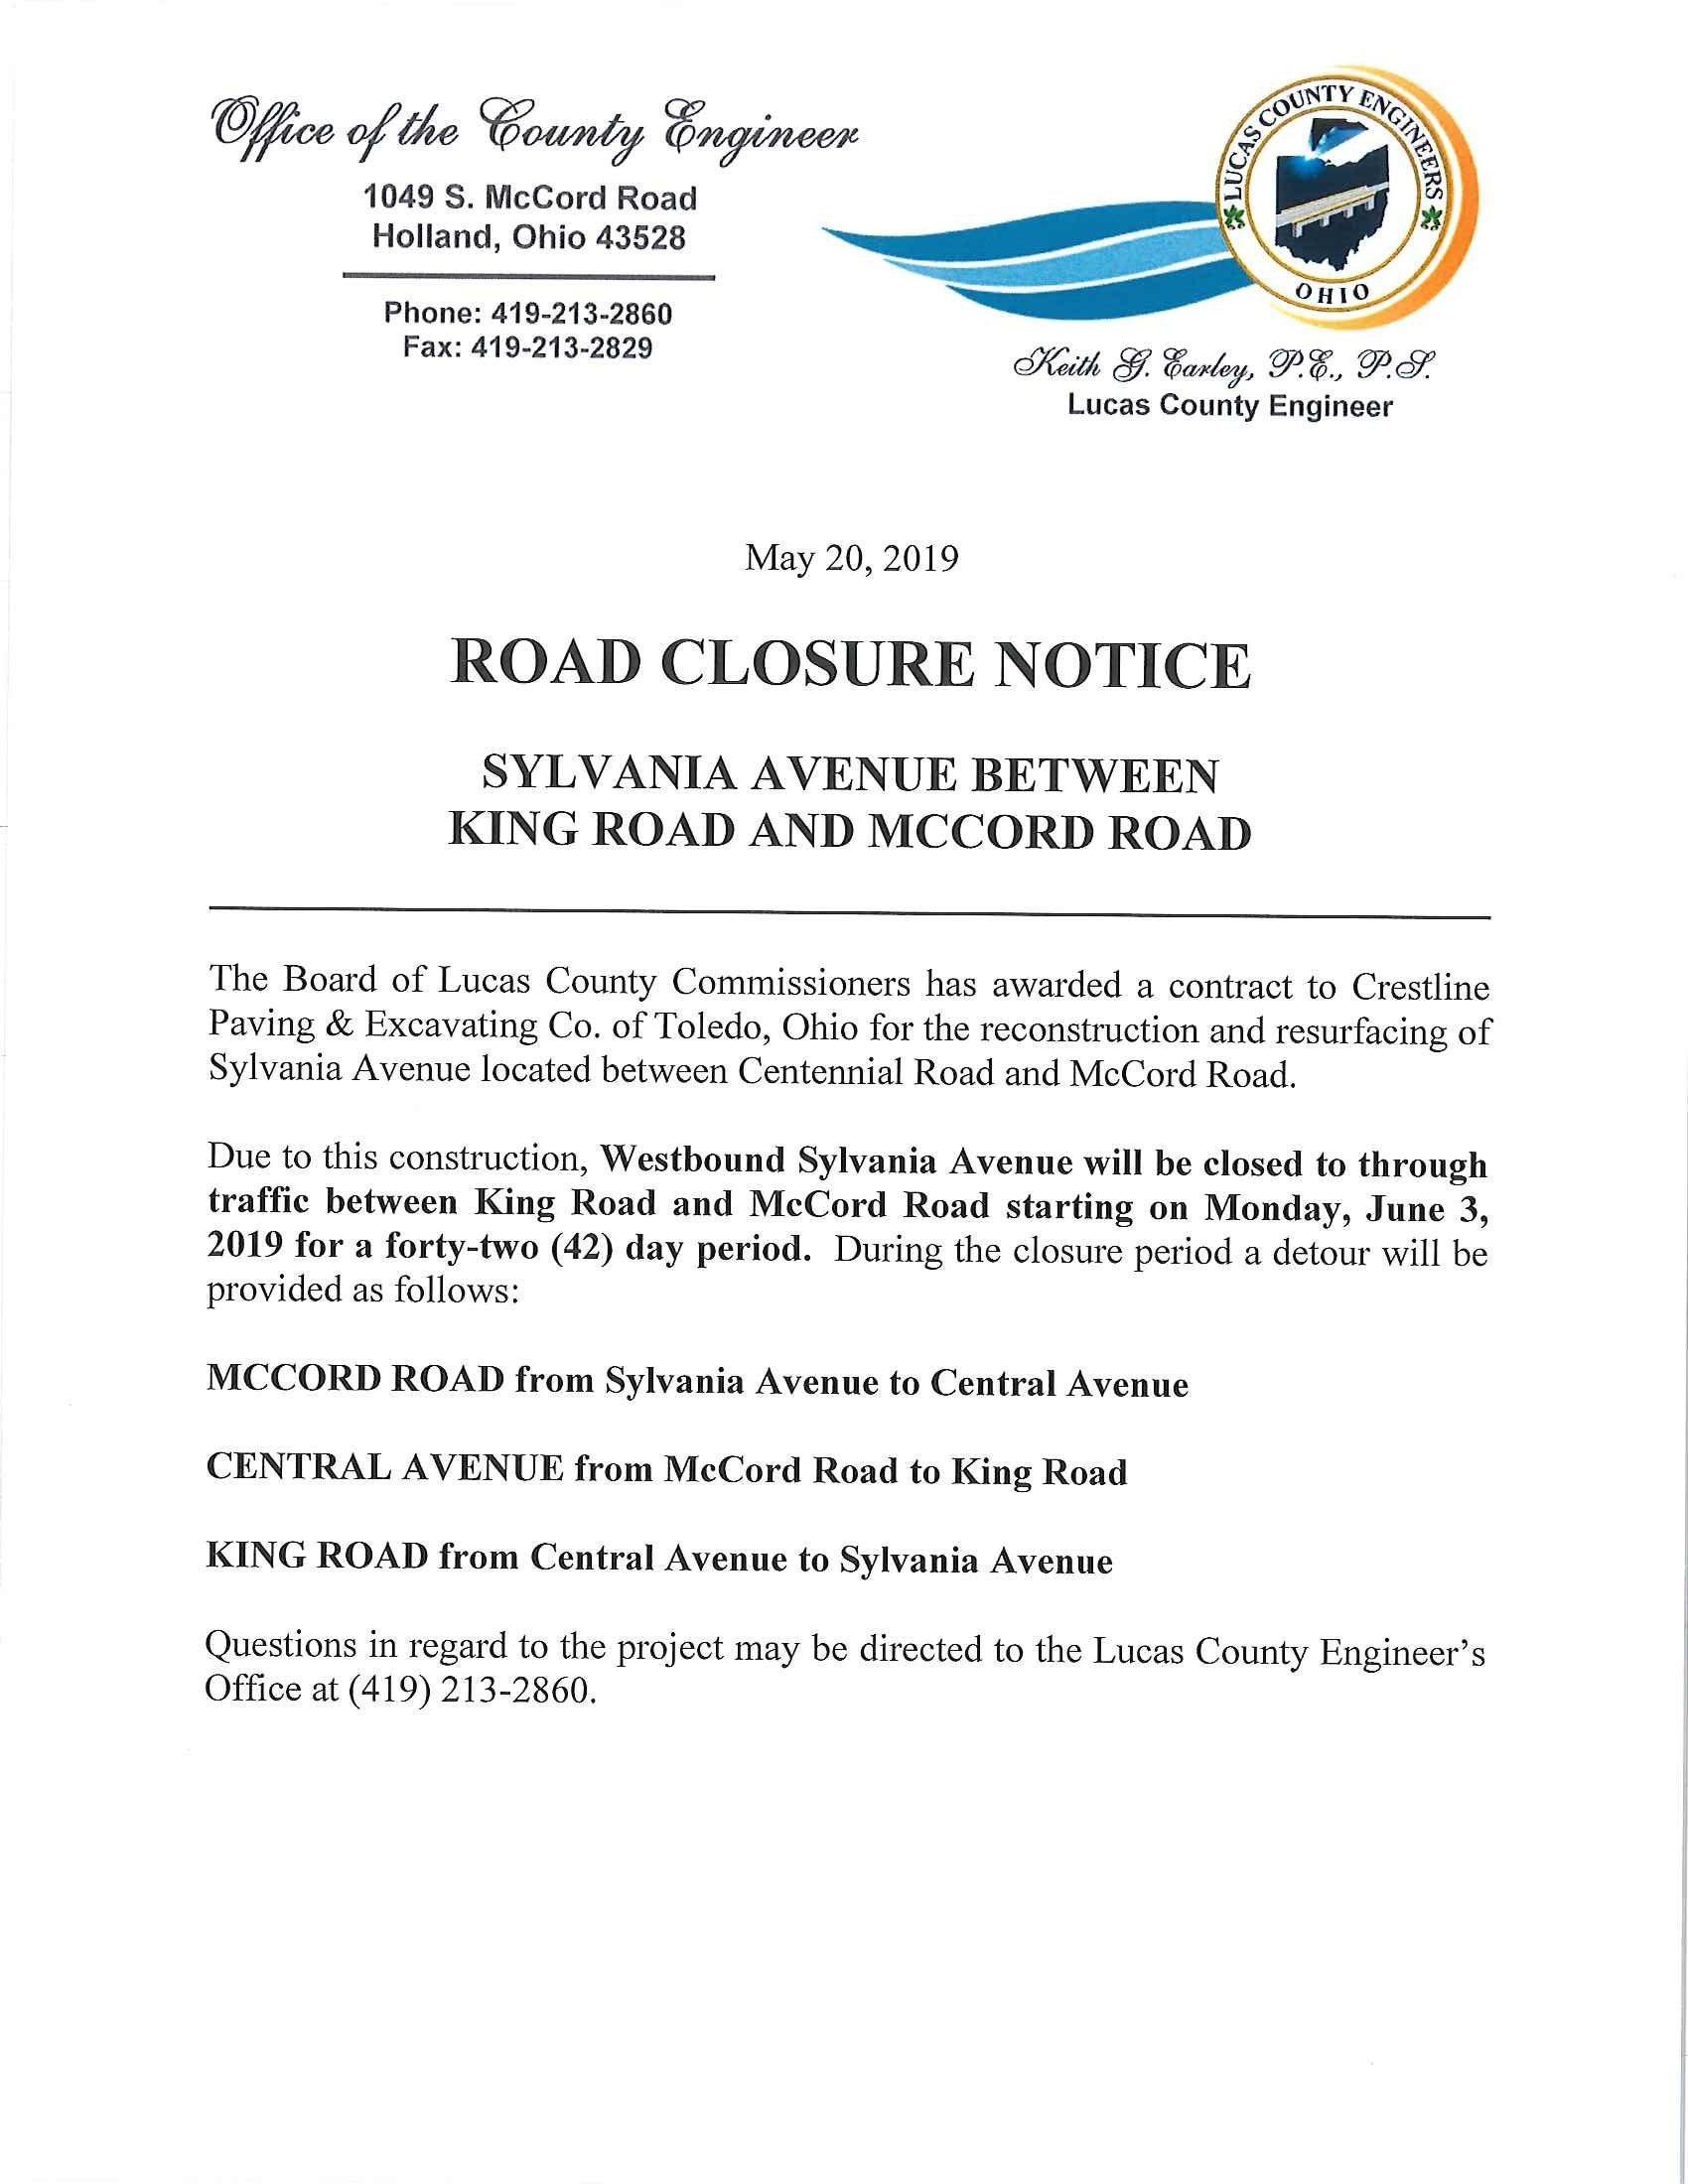 Sylvania Avenue Road Closure